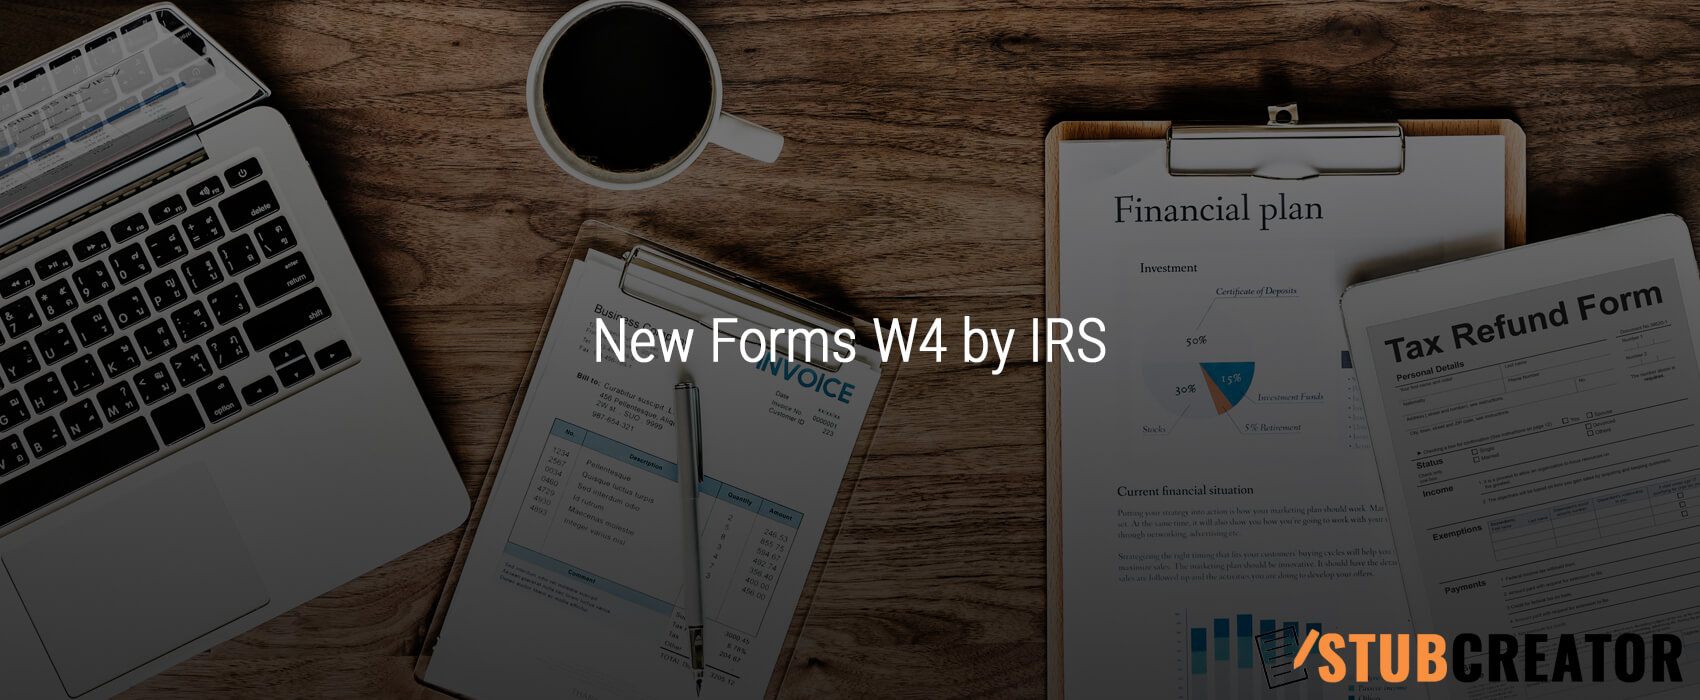 New Forms W4 by IRS